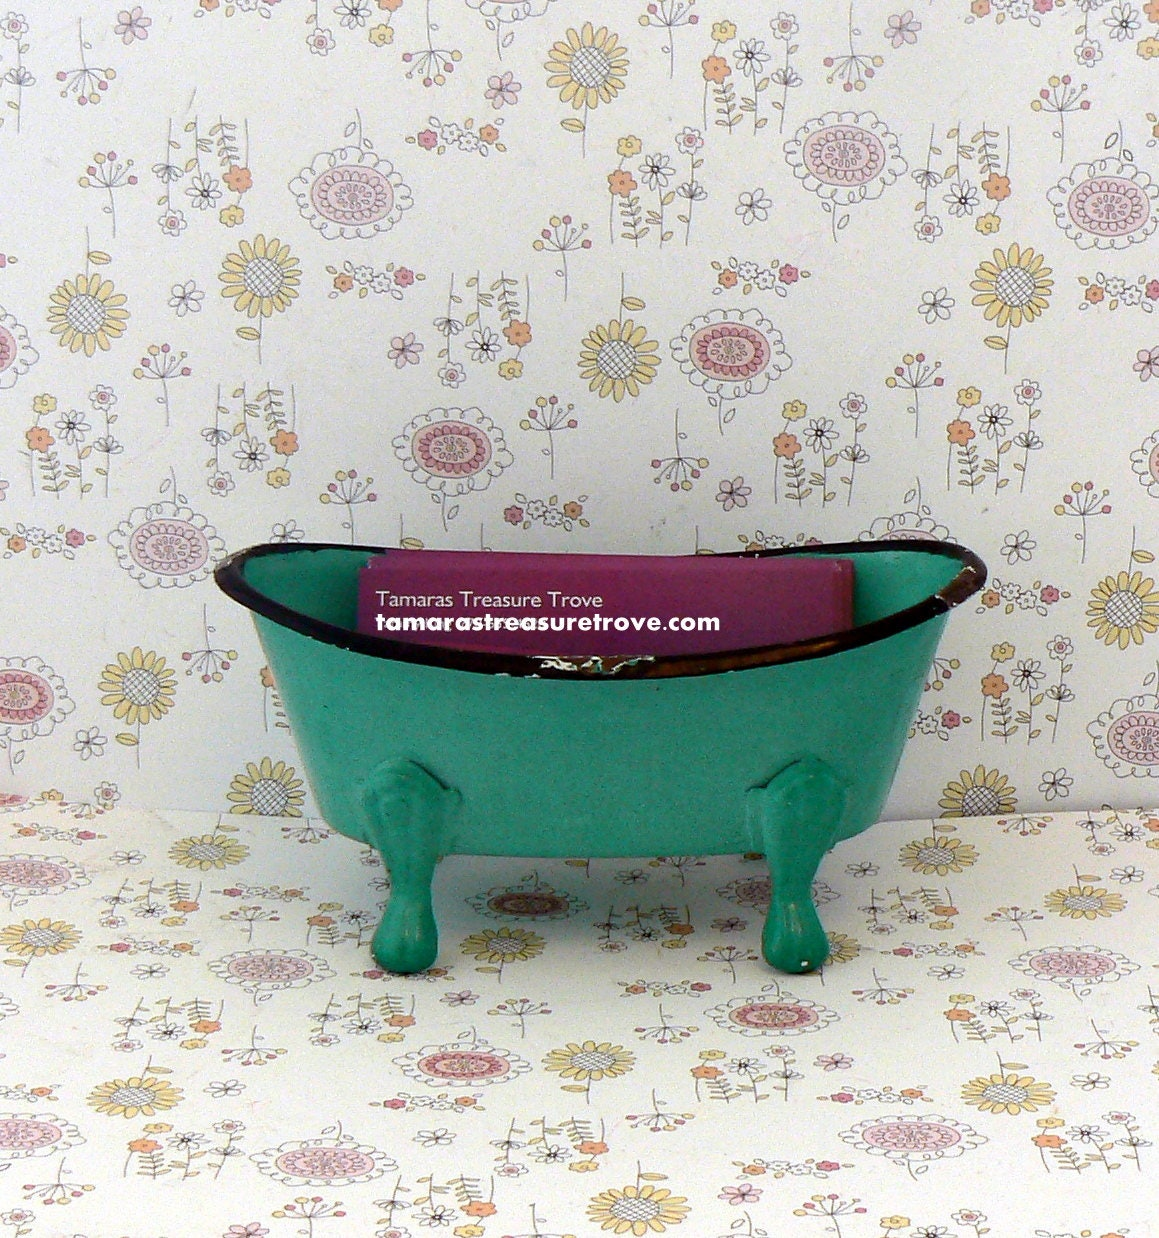 Mini Claw Foot Tub Business Card Cell Phone Holder Shabby Chic ...